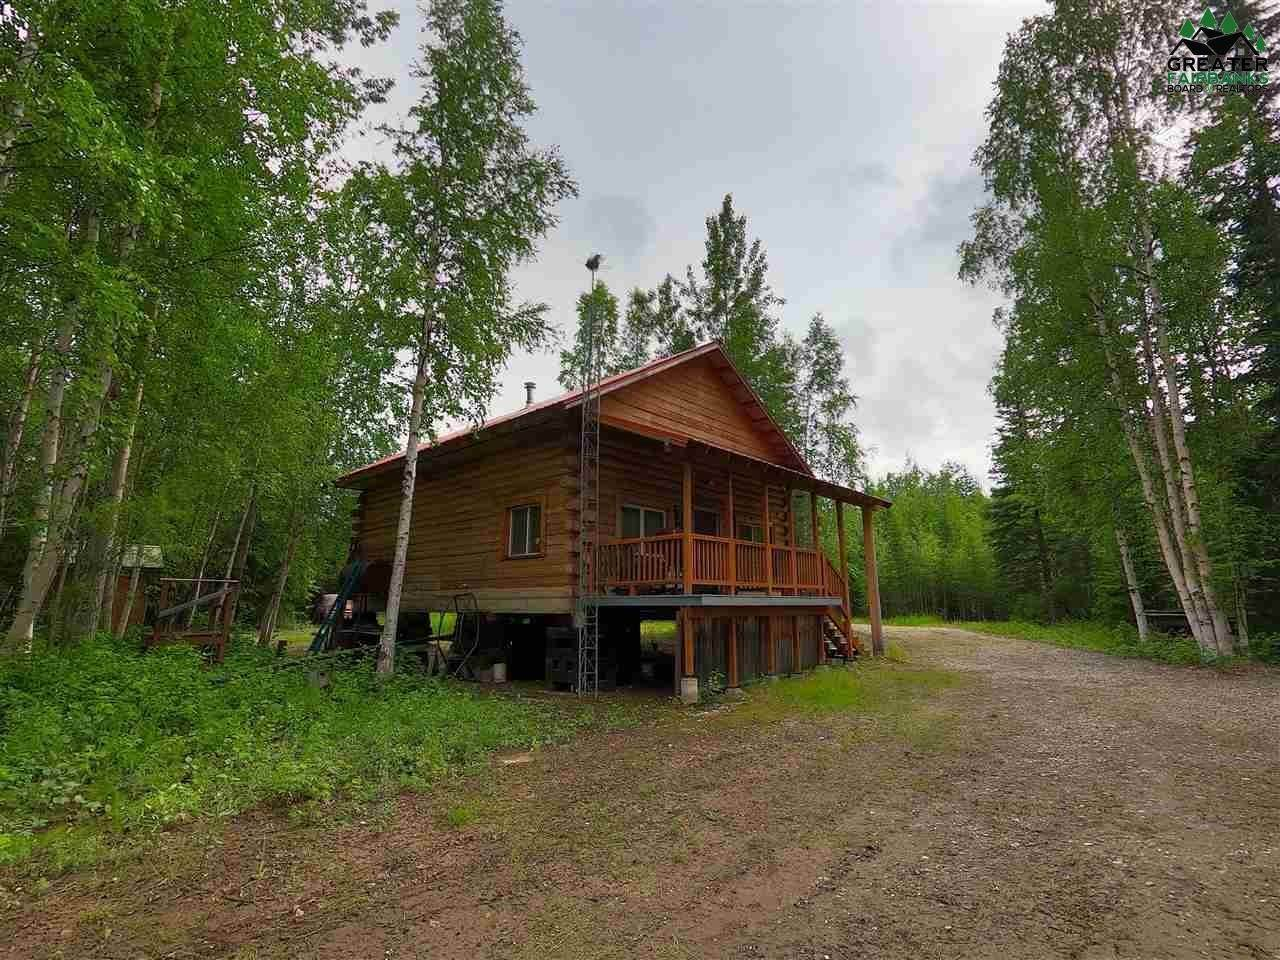 Single Family Homes for Sale at 7022 BESSIE BARNABAS TRAIL Salcha, Alaska 99714 United States